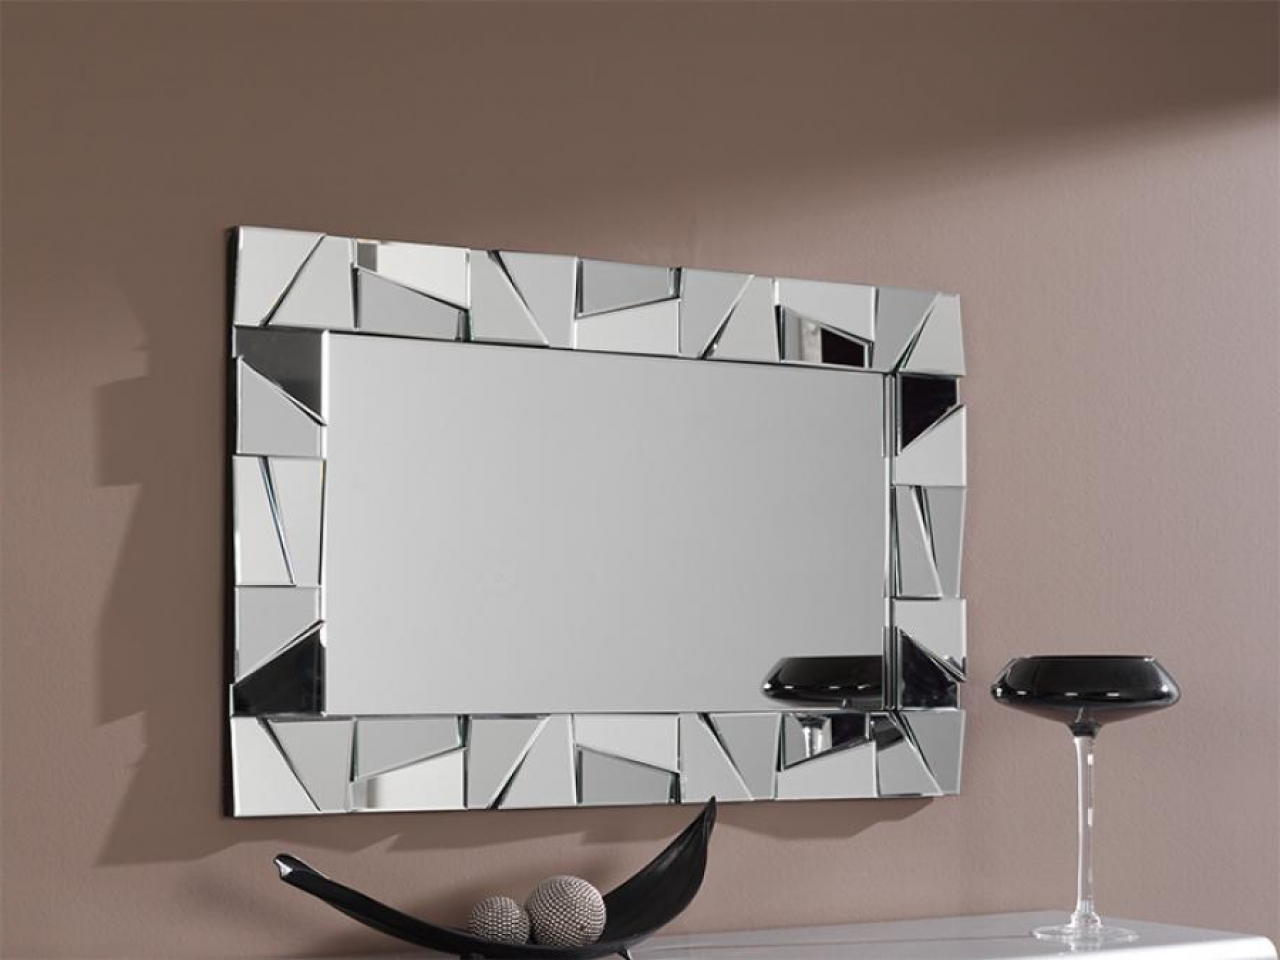 Preferred Modern Bathroom Wall Mirrors, Metal Artwork Modern Wall Pertaining To Large Modern Wall Mirrors (View 18 of 20)